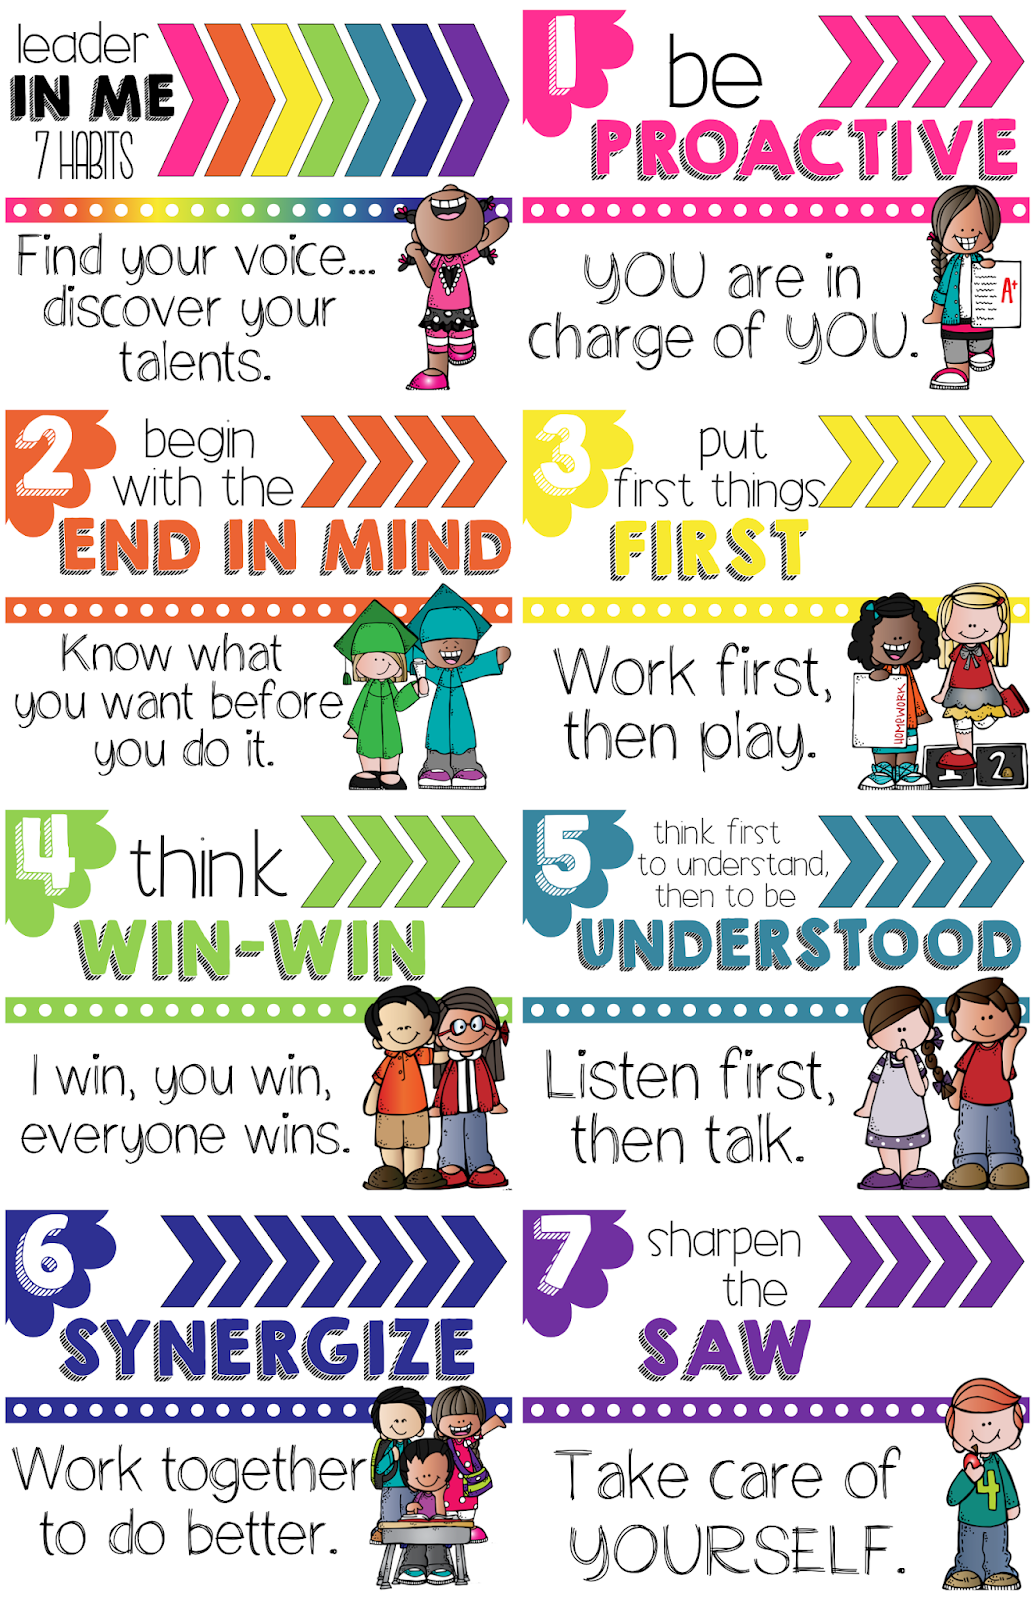 Kearson S Classroom Leader In Me 7 Habits Classroom Posters